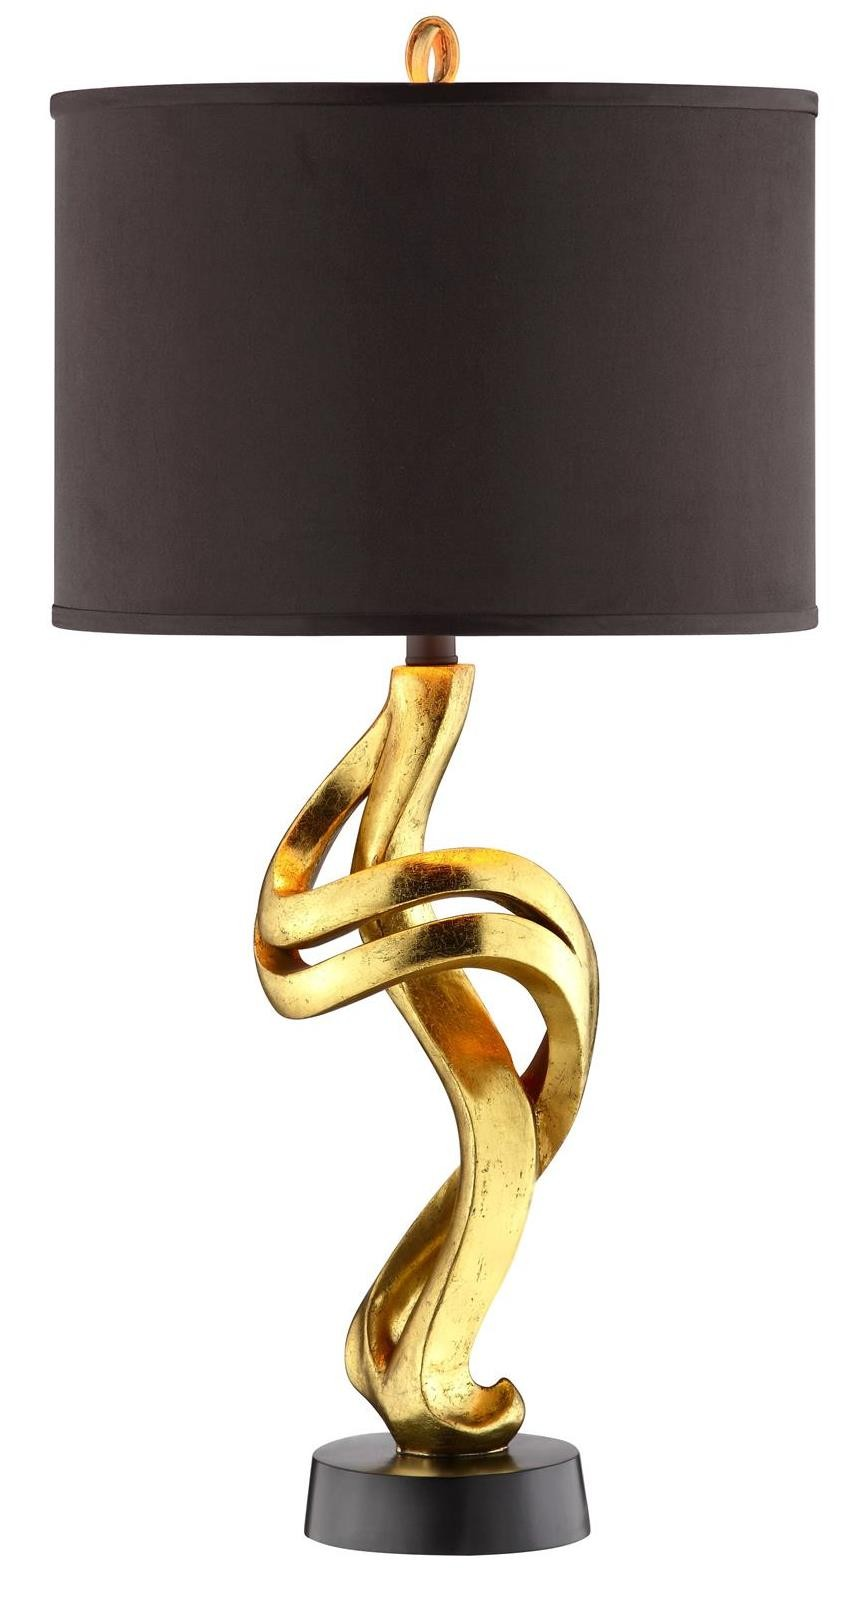 belle resin gold and black table lamp from steinworld 99809 coleman furniture. Black Bedroom Furniture Sets. Home Design Ideas